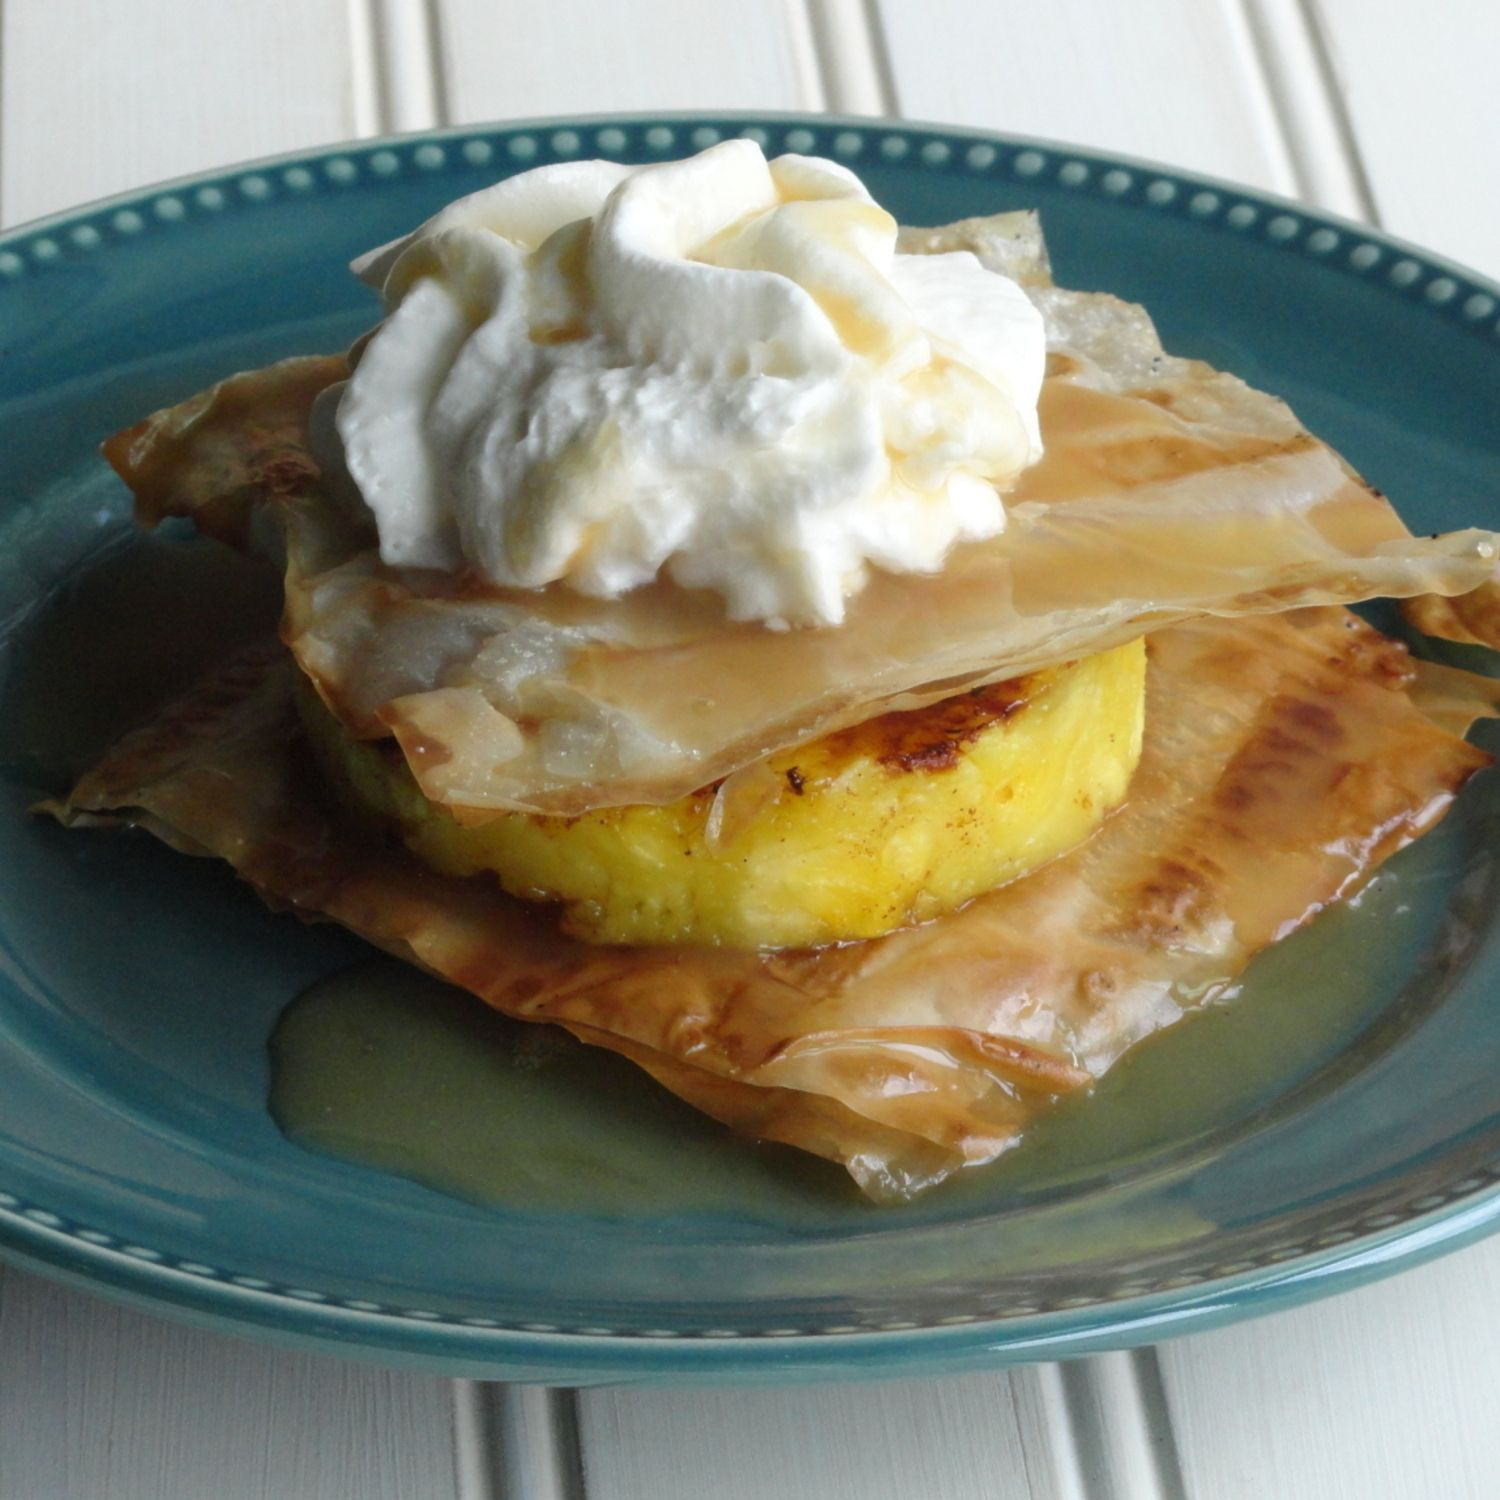 Check out Grilled Pineapple Napoleons with Coconut Caramel ...